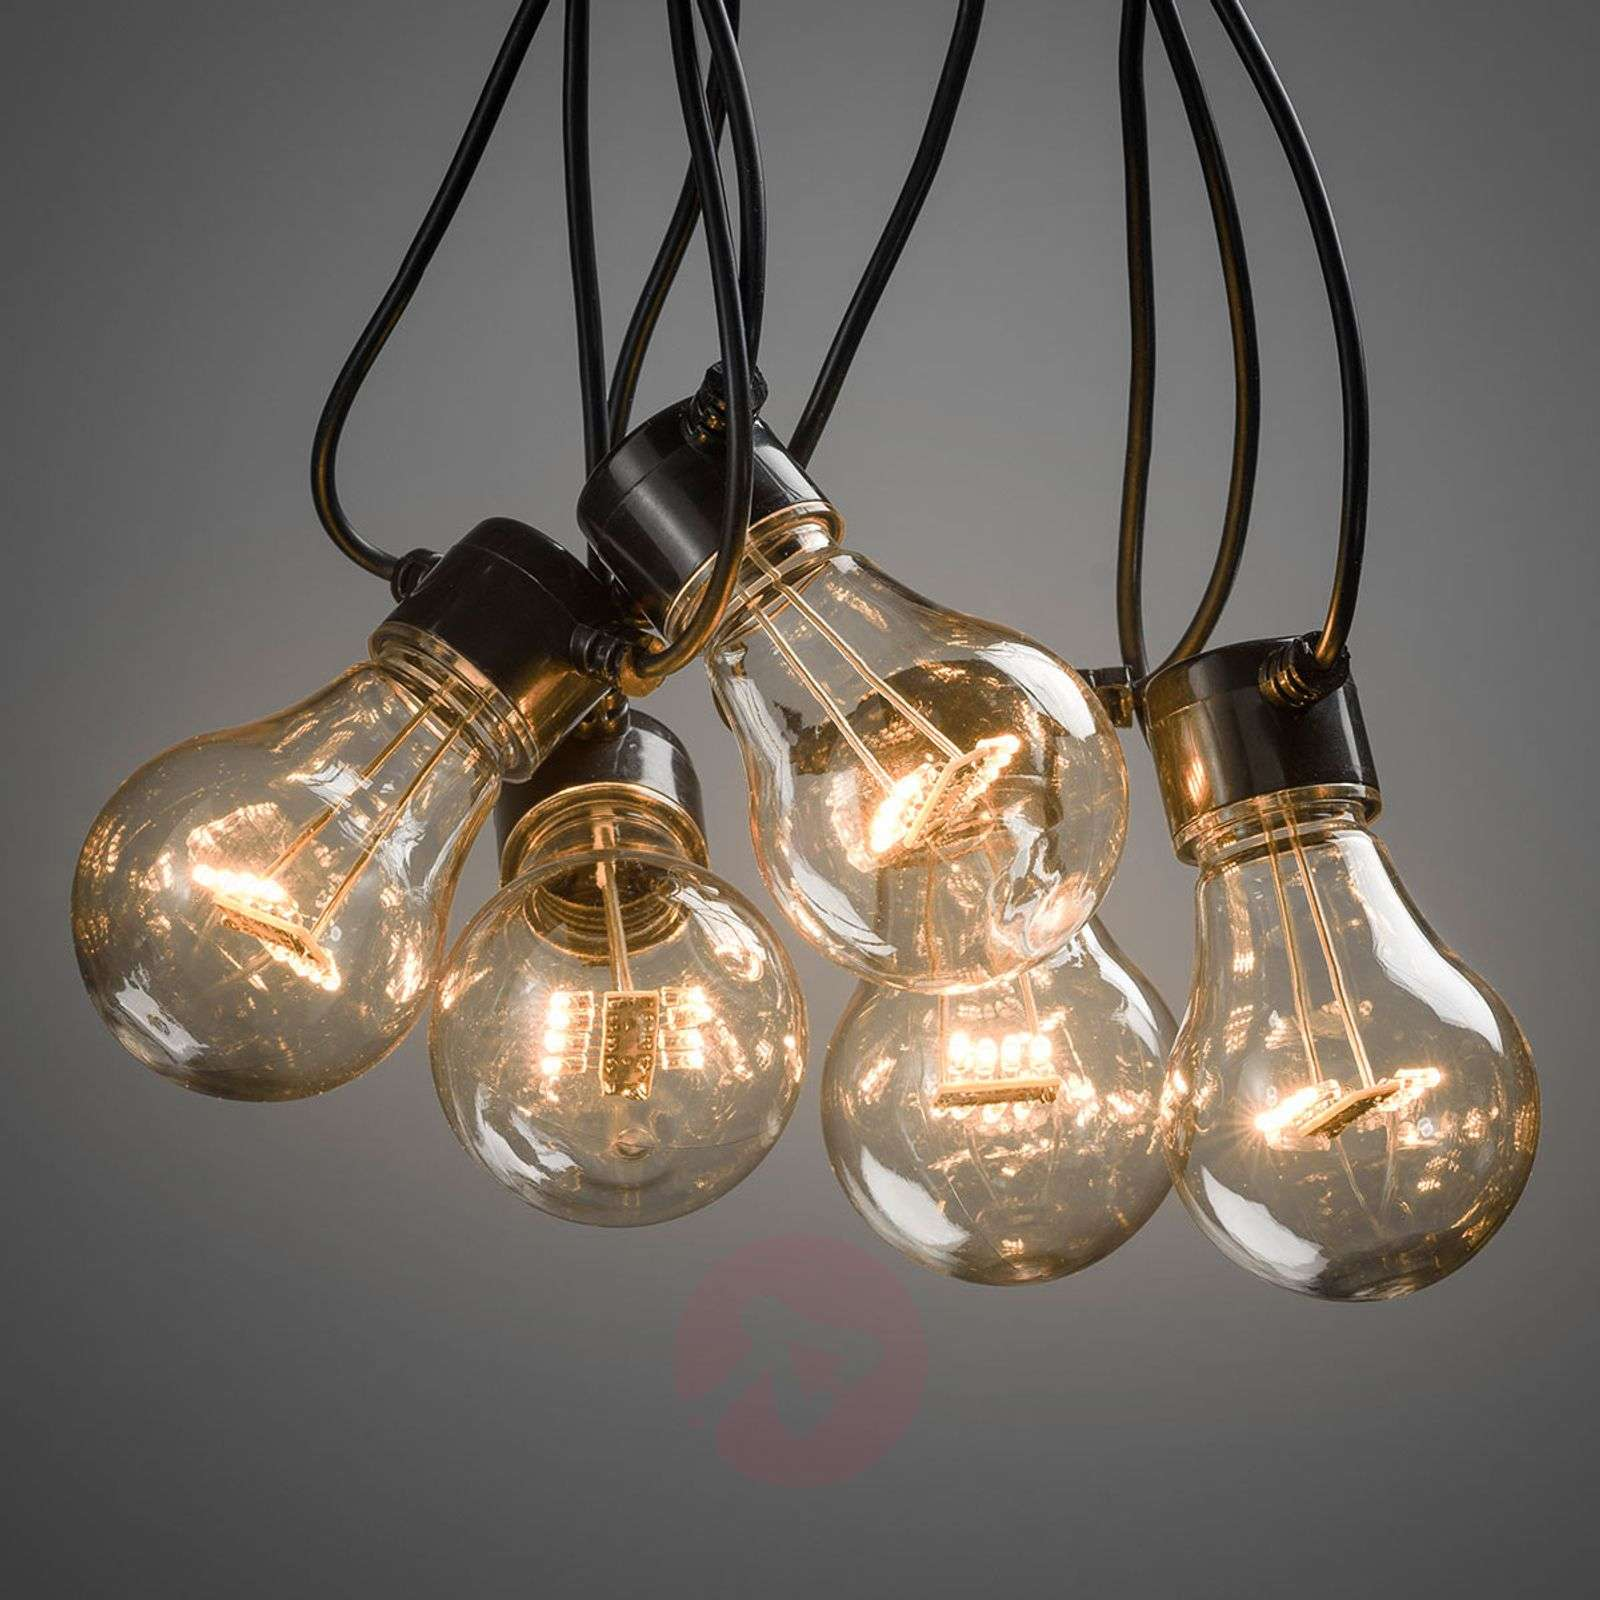 LED string lights filament amber 5-bulb-5524805-01